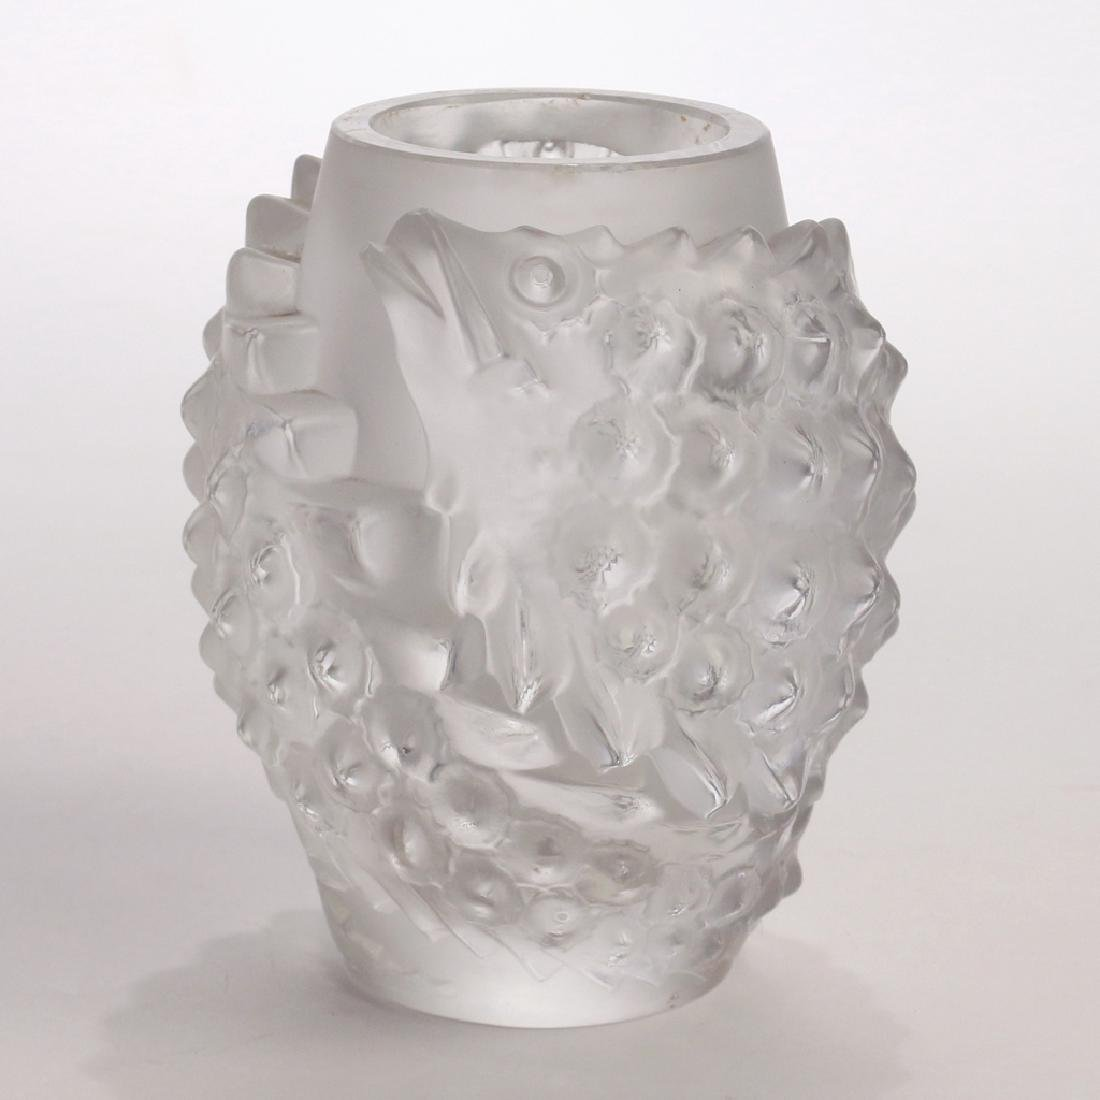 """RENE LALIQUE LES POISSONS"""" FROSTED CRYSTAL VASE"""""""